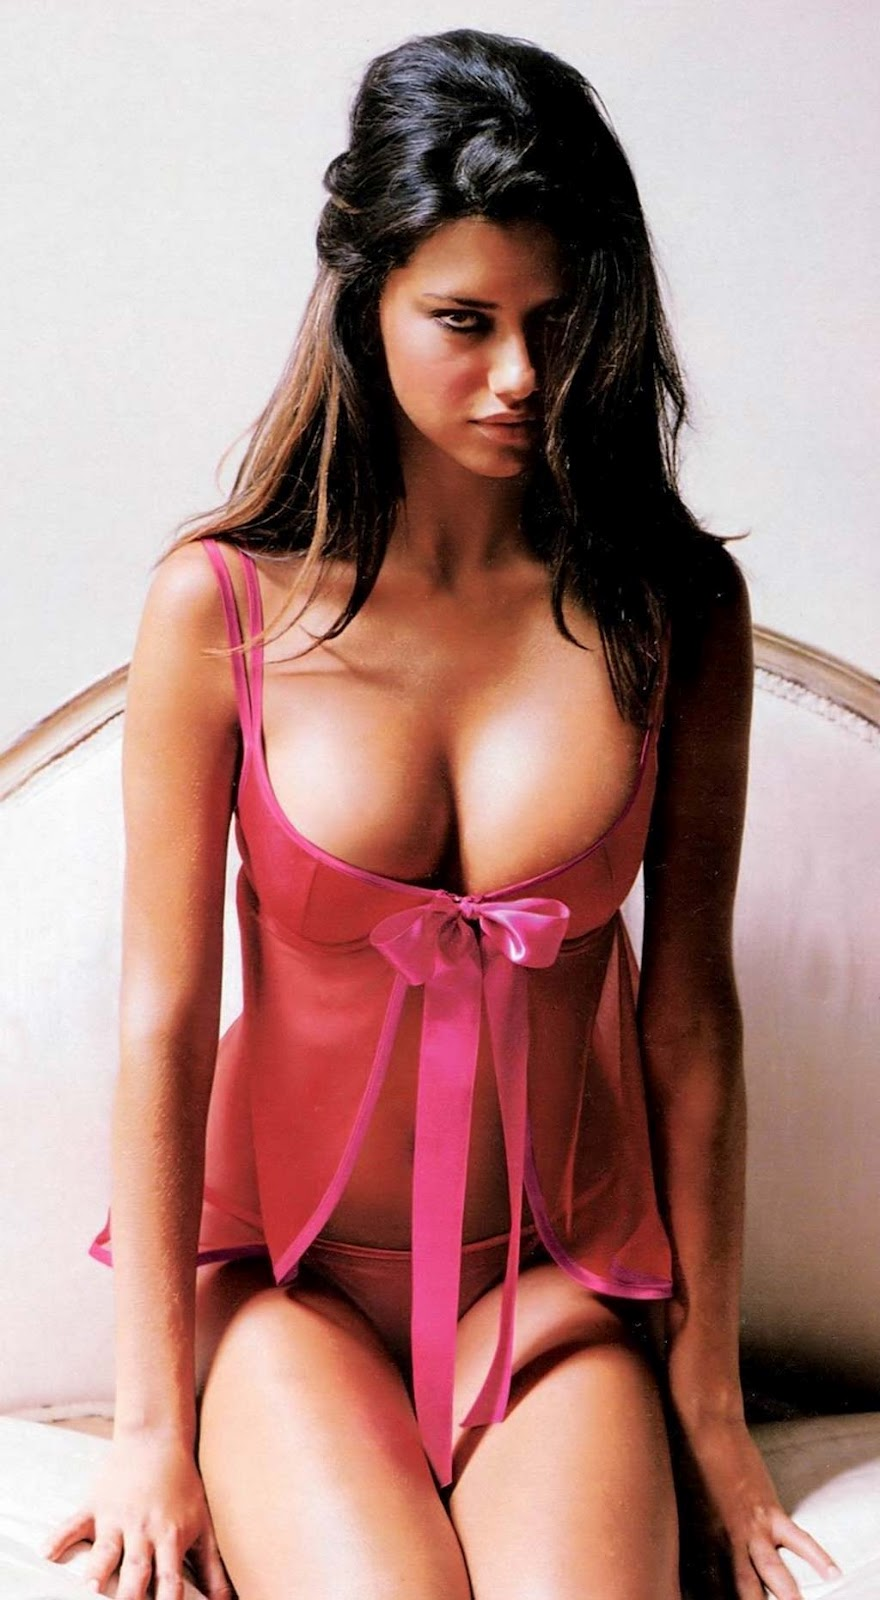 adriana lima photos - photo #19